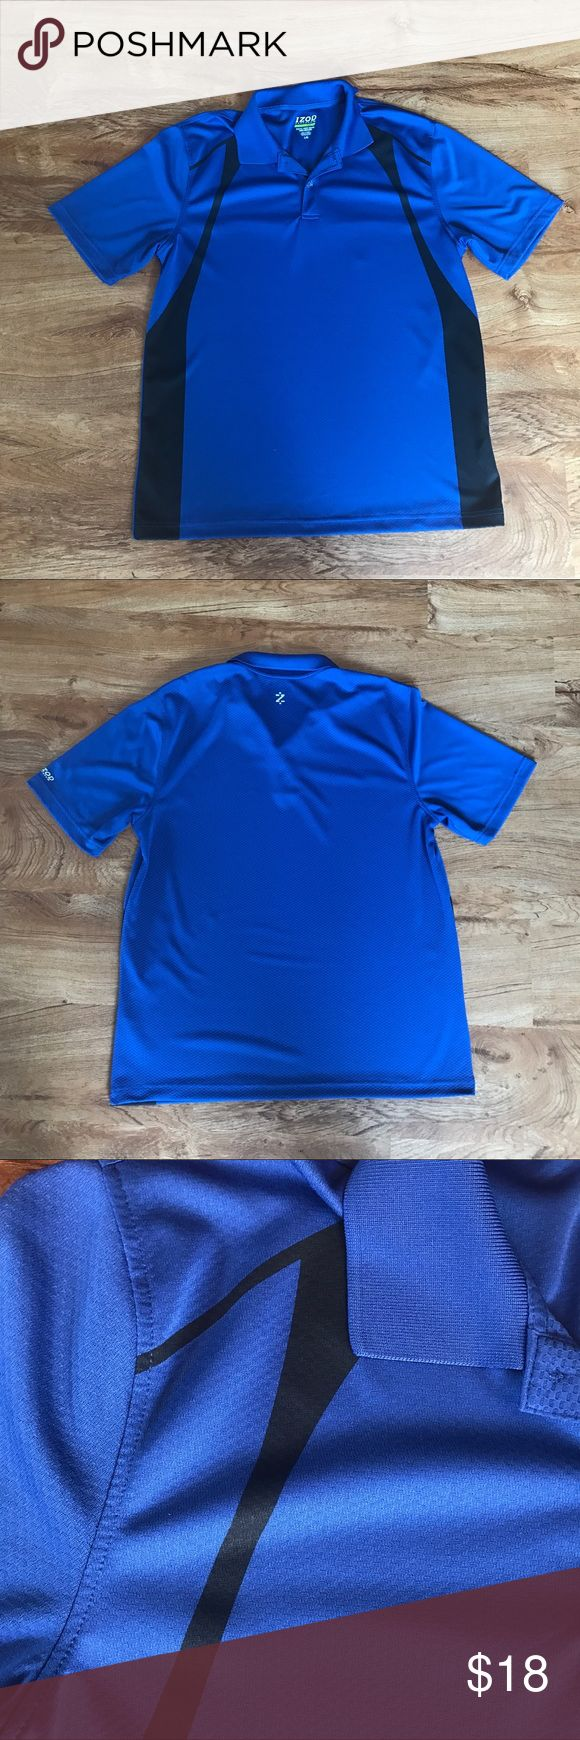 Selling this Izod Performance Golf Polo Shirt Blue Slim Fit on Poshmark! My username is: iheartfashion6. #shopmycloset #poshmark #fashion #shopping #style #forsale #Izod #Other